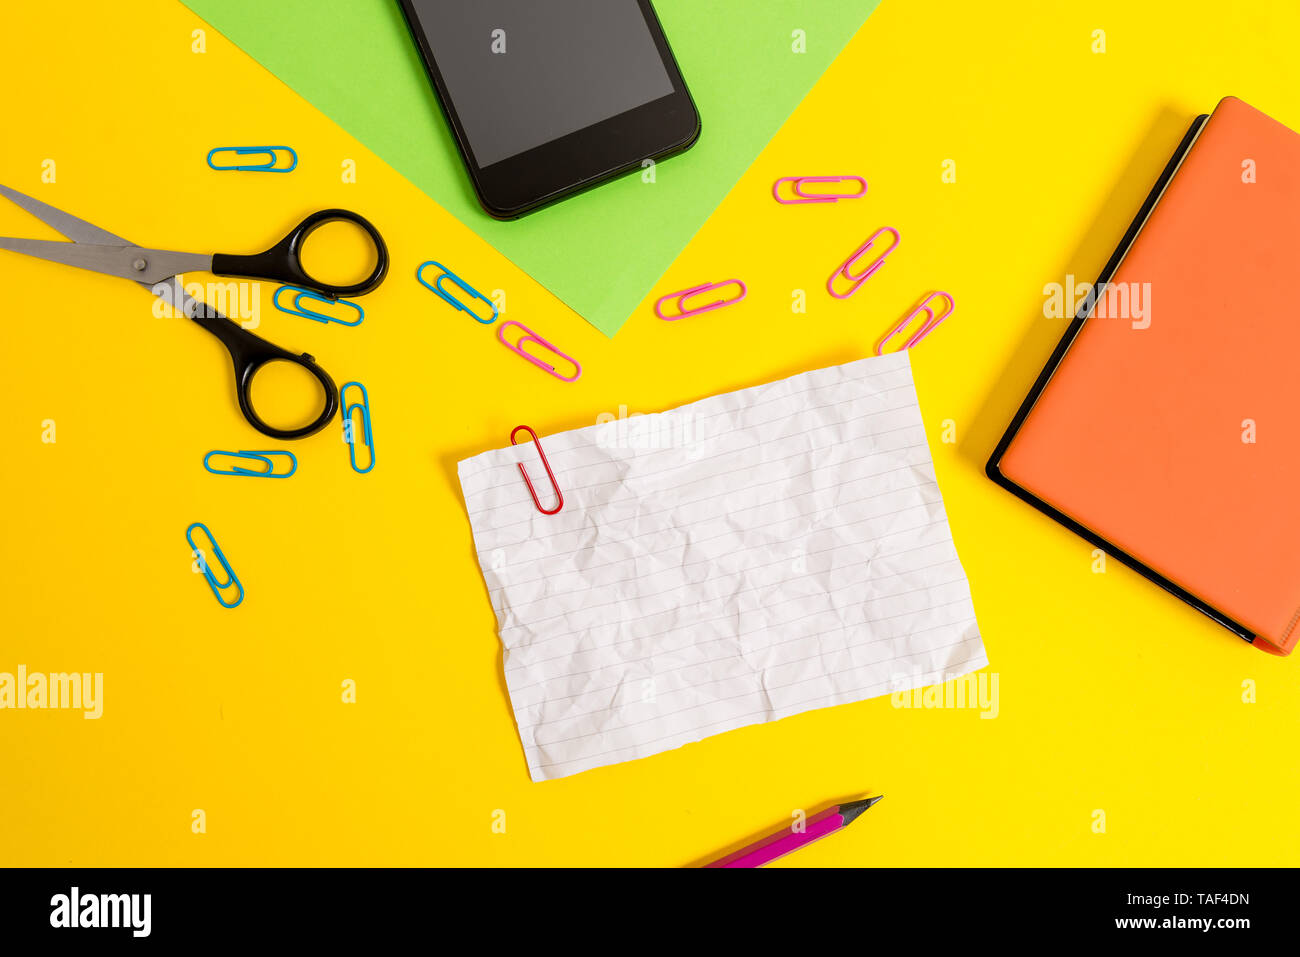 Paper sheets pencil clips smartphone scissors notebook colored background - Stock Image